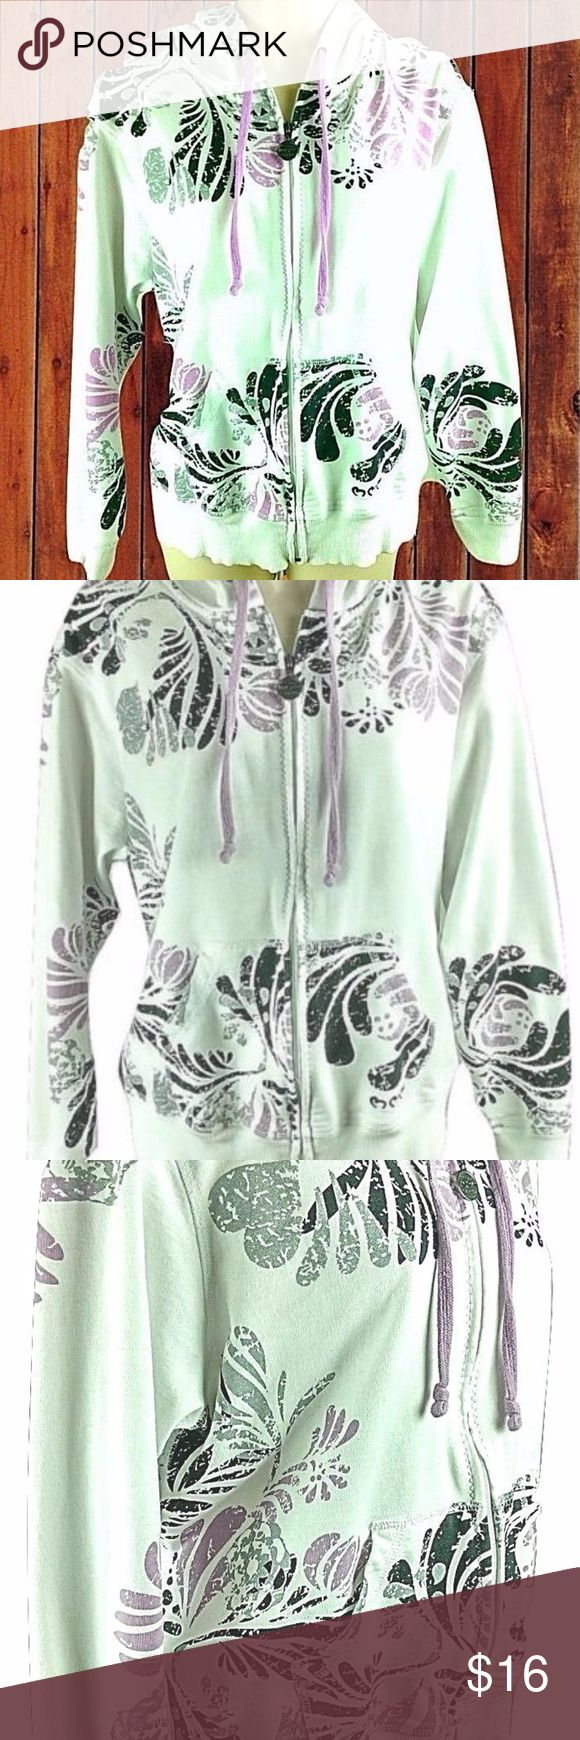 """Zip Up Hoodie Jacket White Purple Black Gray White with black, gray and light purple heart designs throughout. Two front pockets. Sz XL. See the pics.  Measurements (lying flat):  Chest (across the front) - 23.5"""" Length - 23.5"""" Sleeve - 22"""" 3 Hearts Jackets & Coats"""